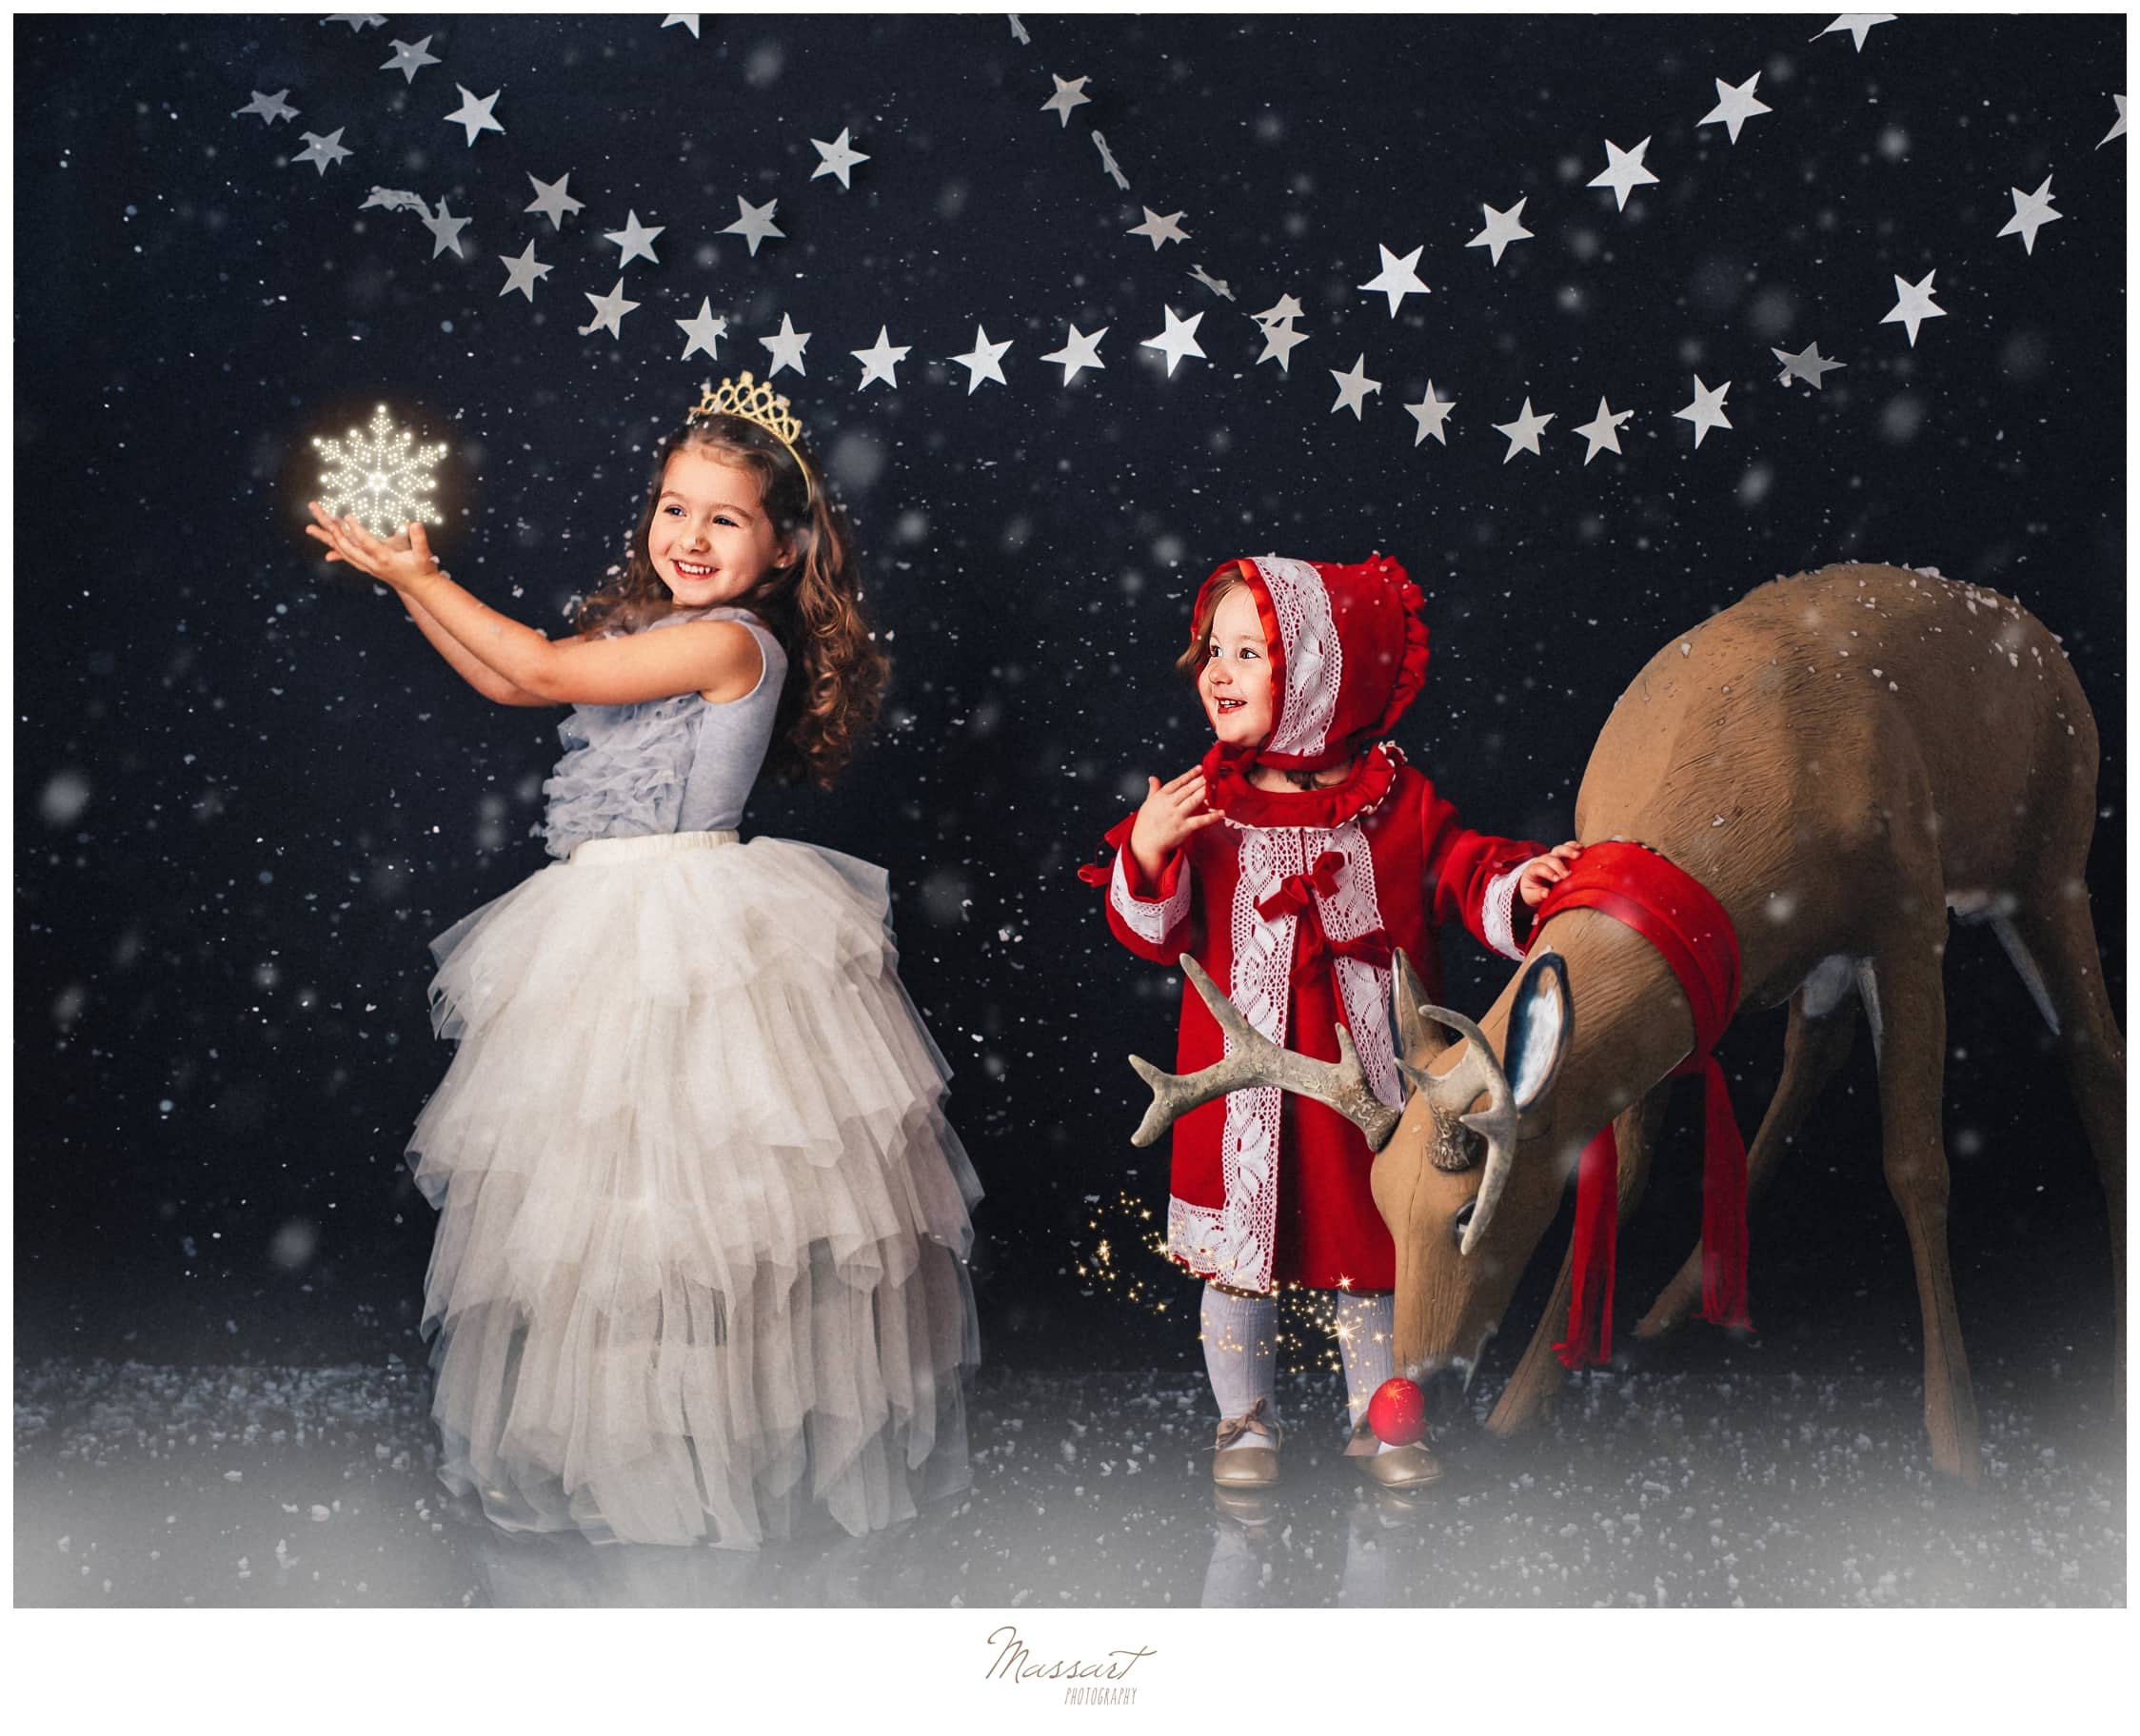 Holiday sessions with Rudolph and snow at Massart Photography in Rhode Island servicing RI and CR